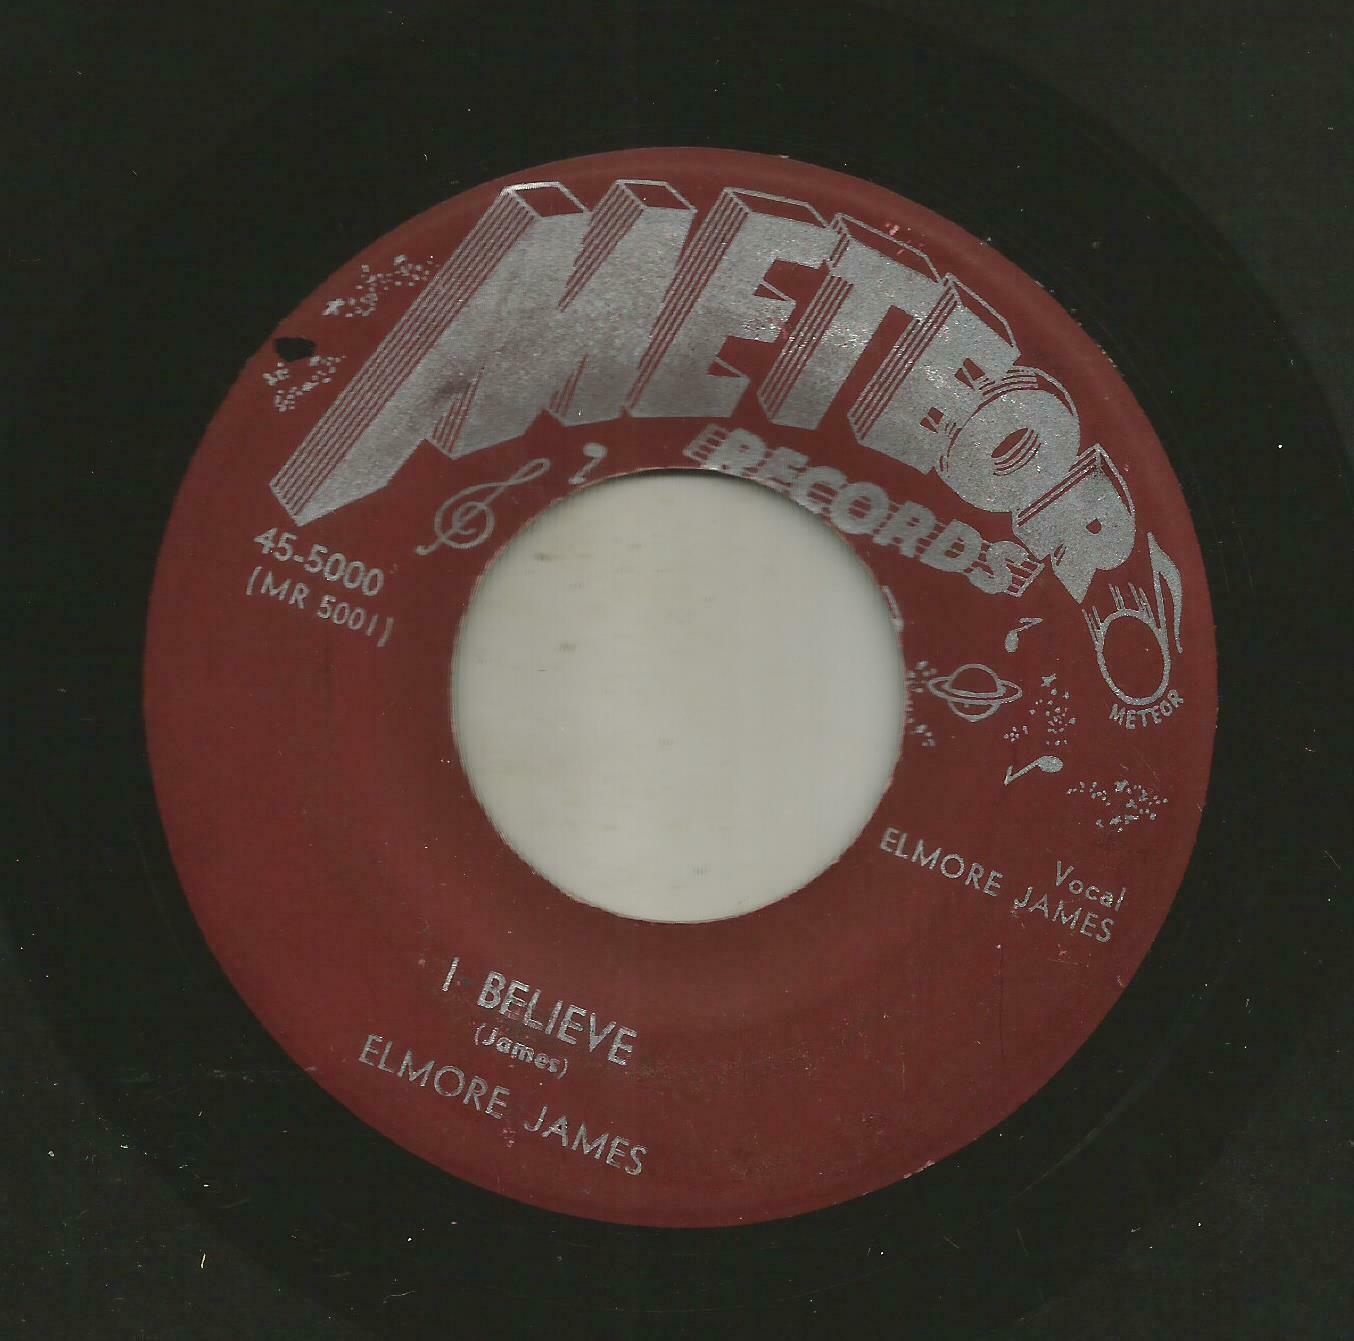 BLUES ROCKER- ELMORE JAMES -  I BELIEVE   -HEAR -1952 METEOR 5000